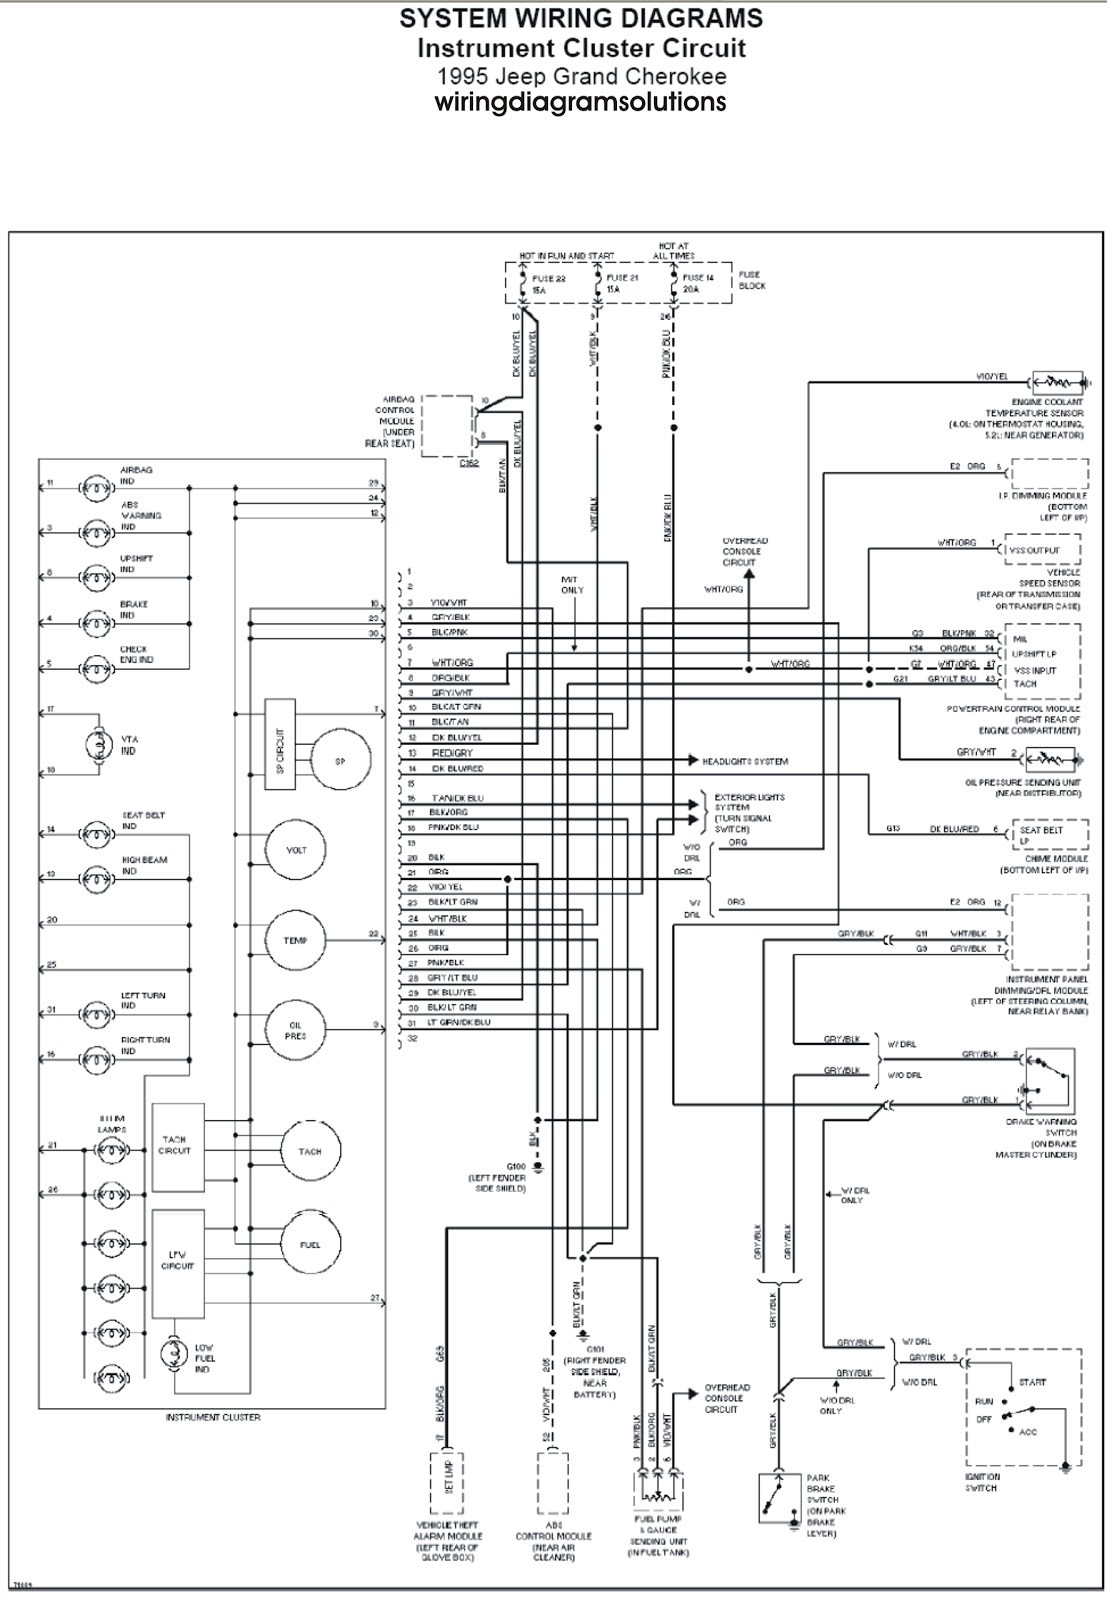 Wiring diagram for 1999 jeep grand cherokee auto electrical wiring 1999 jeep grand cherokee infinity stereo wiring diagram best of rh mainetreasurechest com stereo wiring diagram for 1999 jeep grand cherokee wiring diagram cheapraybanclubmaster